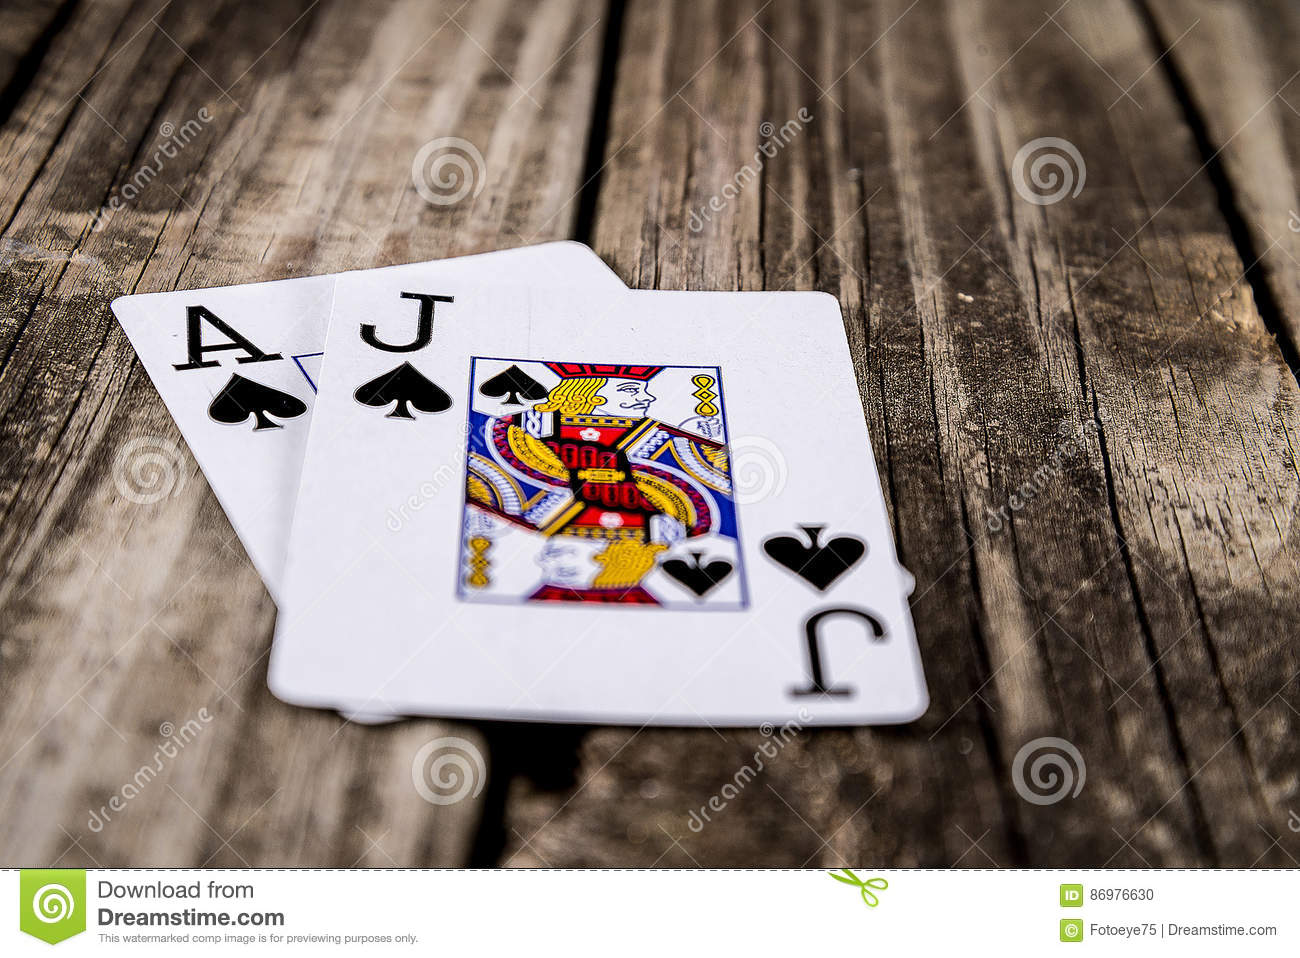 Black Jack Poker on Wood stock photo  Image of entertaining - 86976630